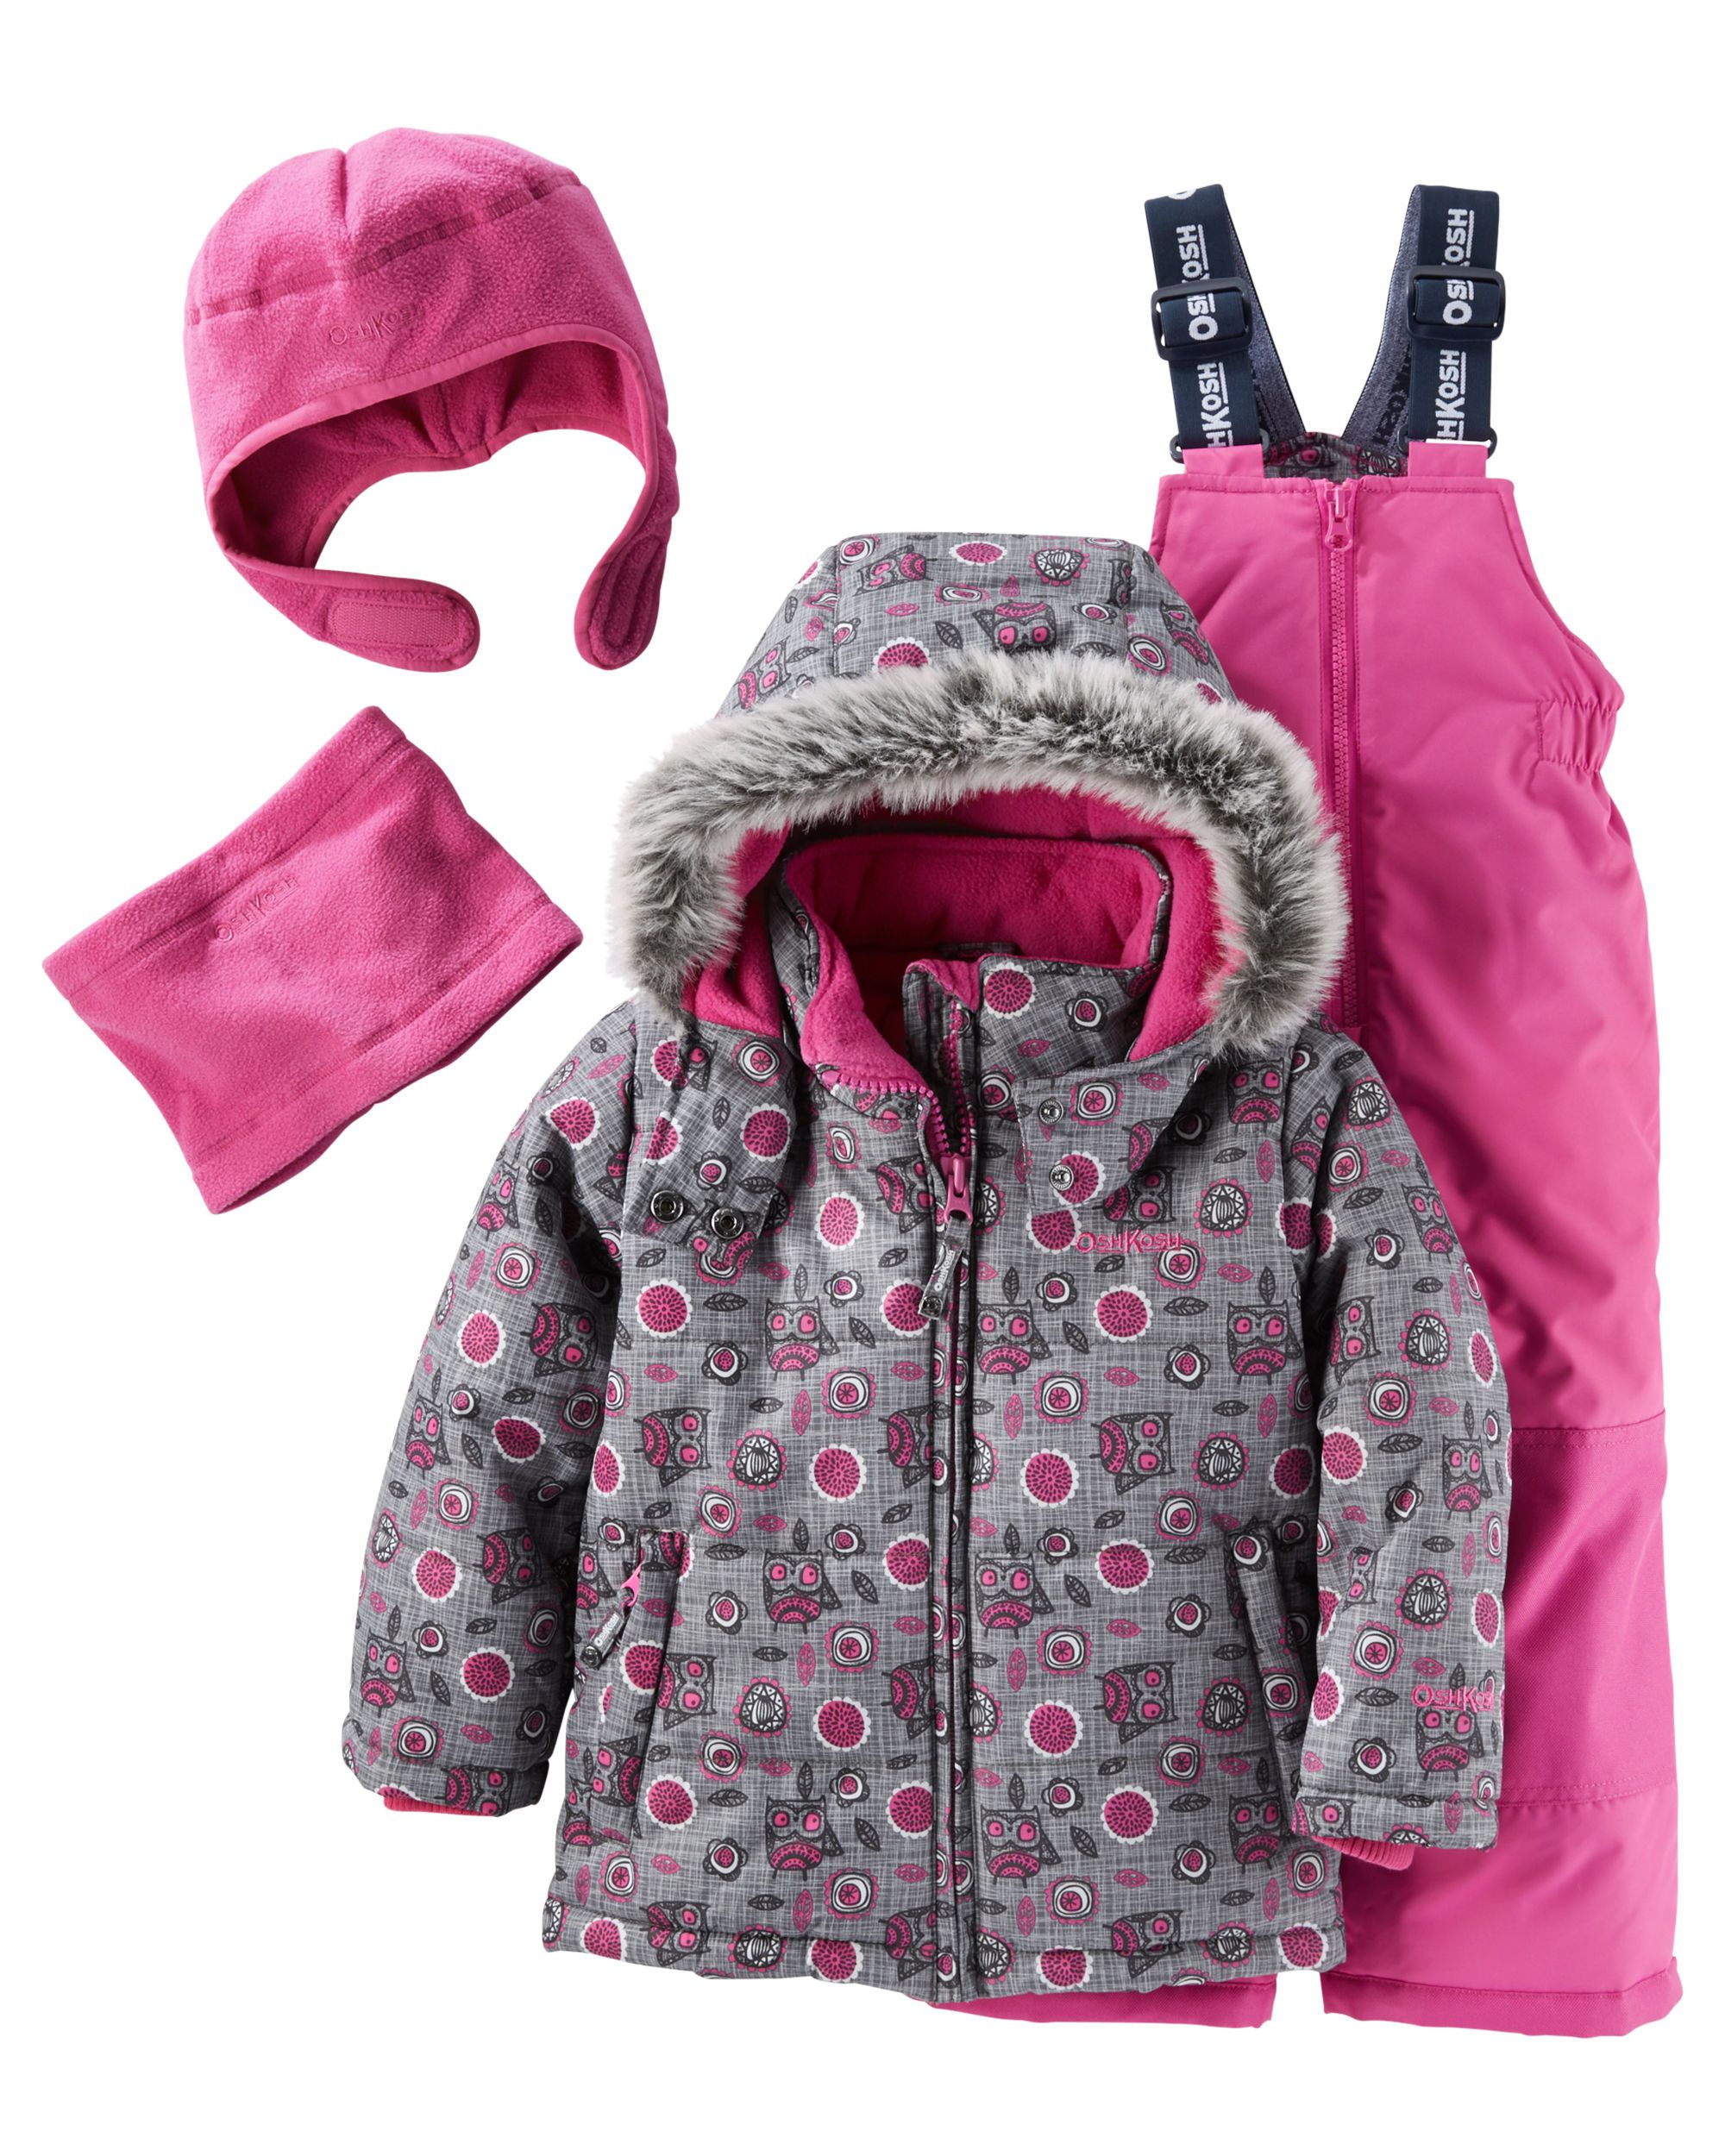 7936e7e9a Toddler Girl 4-Piece Fleece-Lined Allover Print Snowsuit Set ...